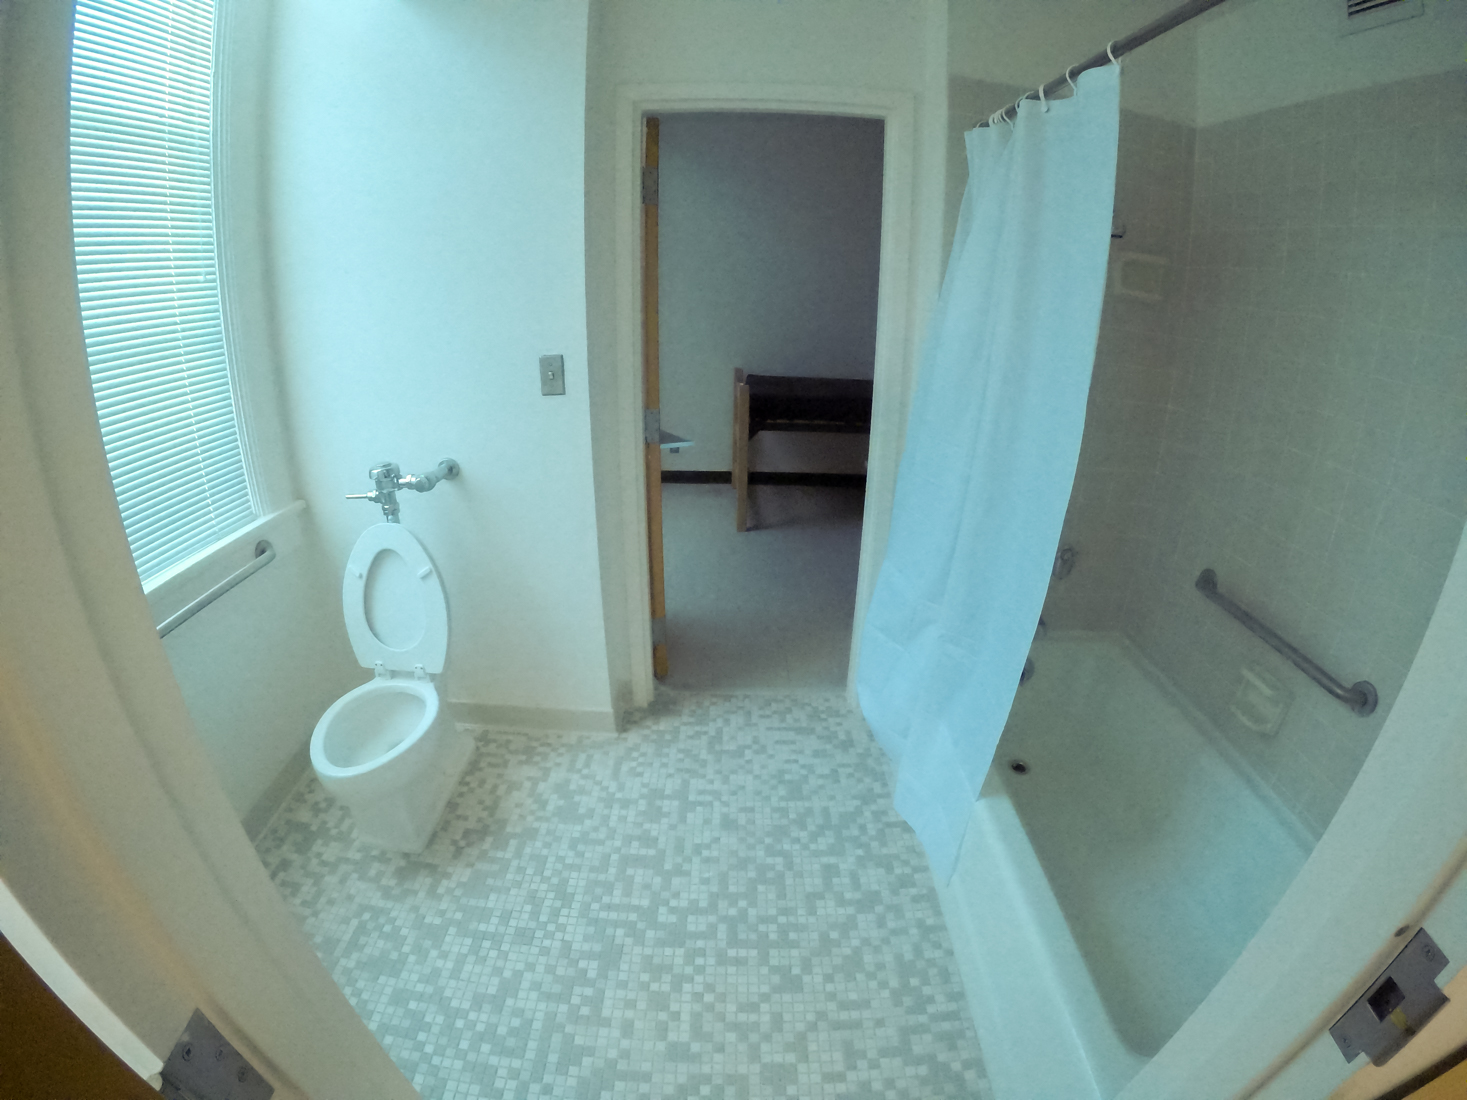 Bathrooms+between+single+rooms+are+shared+in+Founders+Hall.++Students+living+in+Founders+hall+may+find+it+more+convenient+to+share+a+bathroom+with+only+one+suite-mate+as-opposed+to+three%2C+or+even+entire+floors+in+other+residence+halls.+Photo+credit%3A+Jacob+Meyer